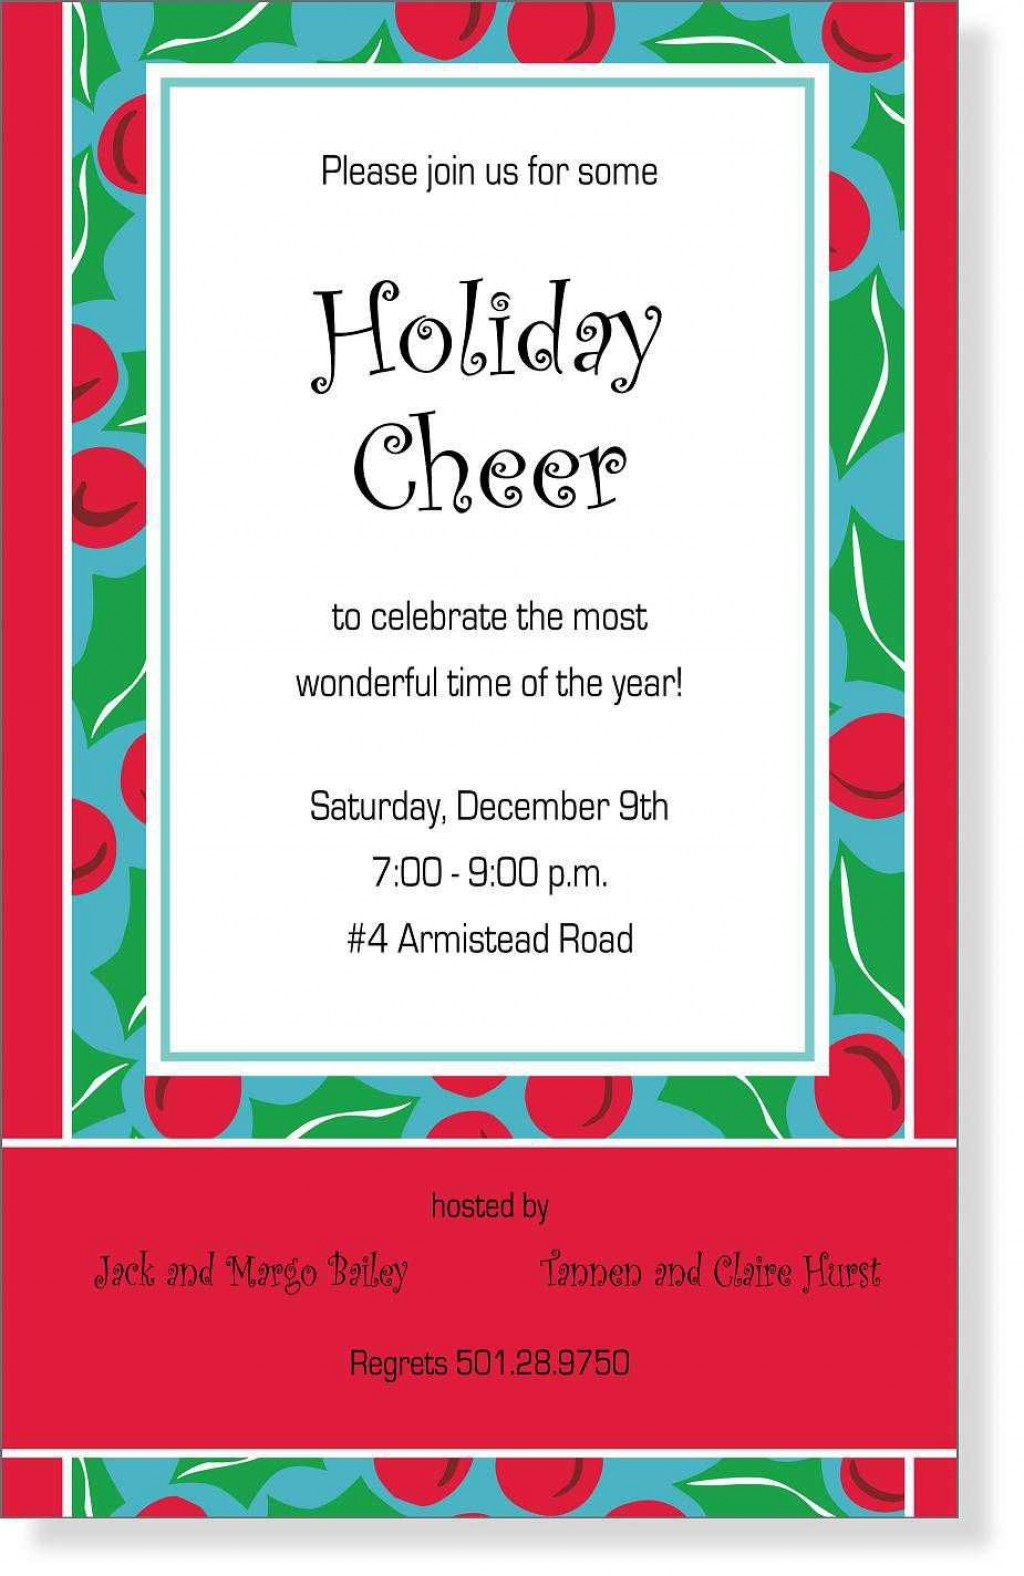 006 Phenomenal Holiday Open House Invitation Template High Resolution  Christma Free Printable Wording IdeaLarge